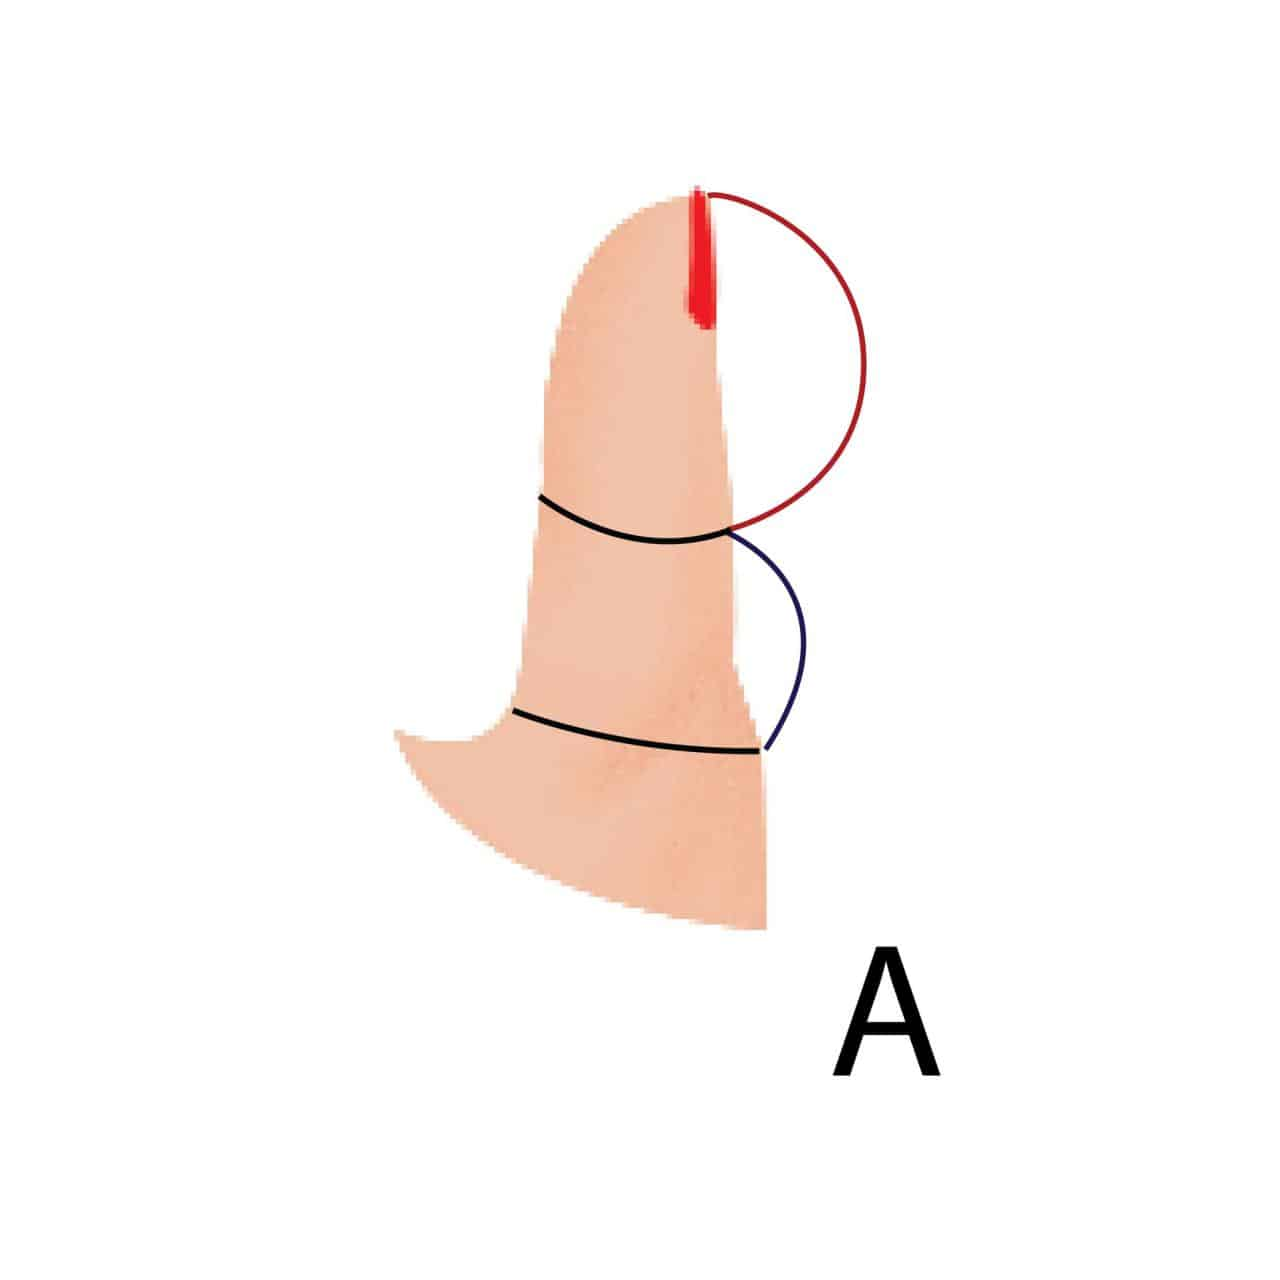 What does size of thumb reveals about your personality